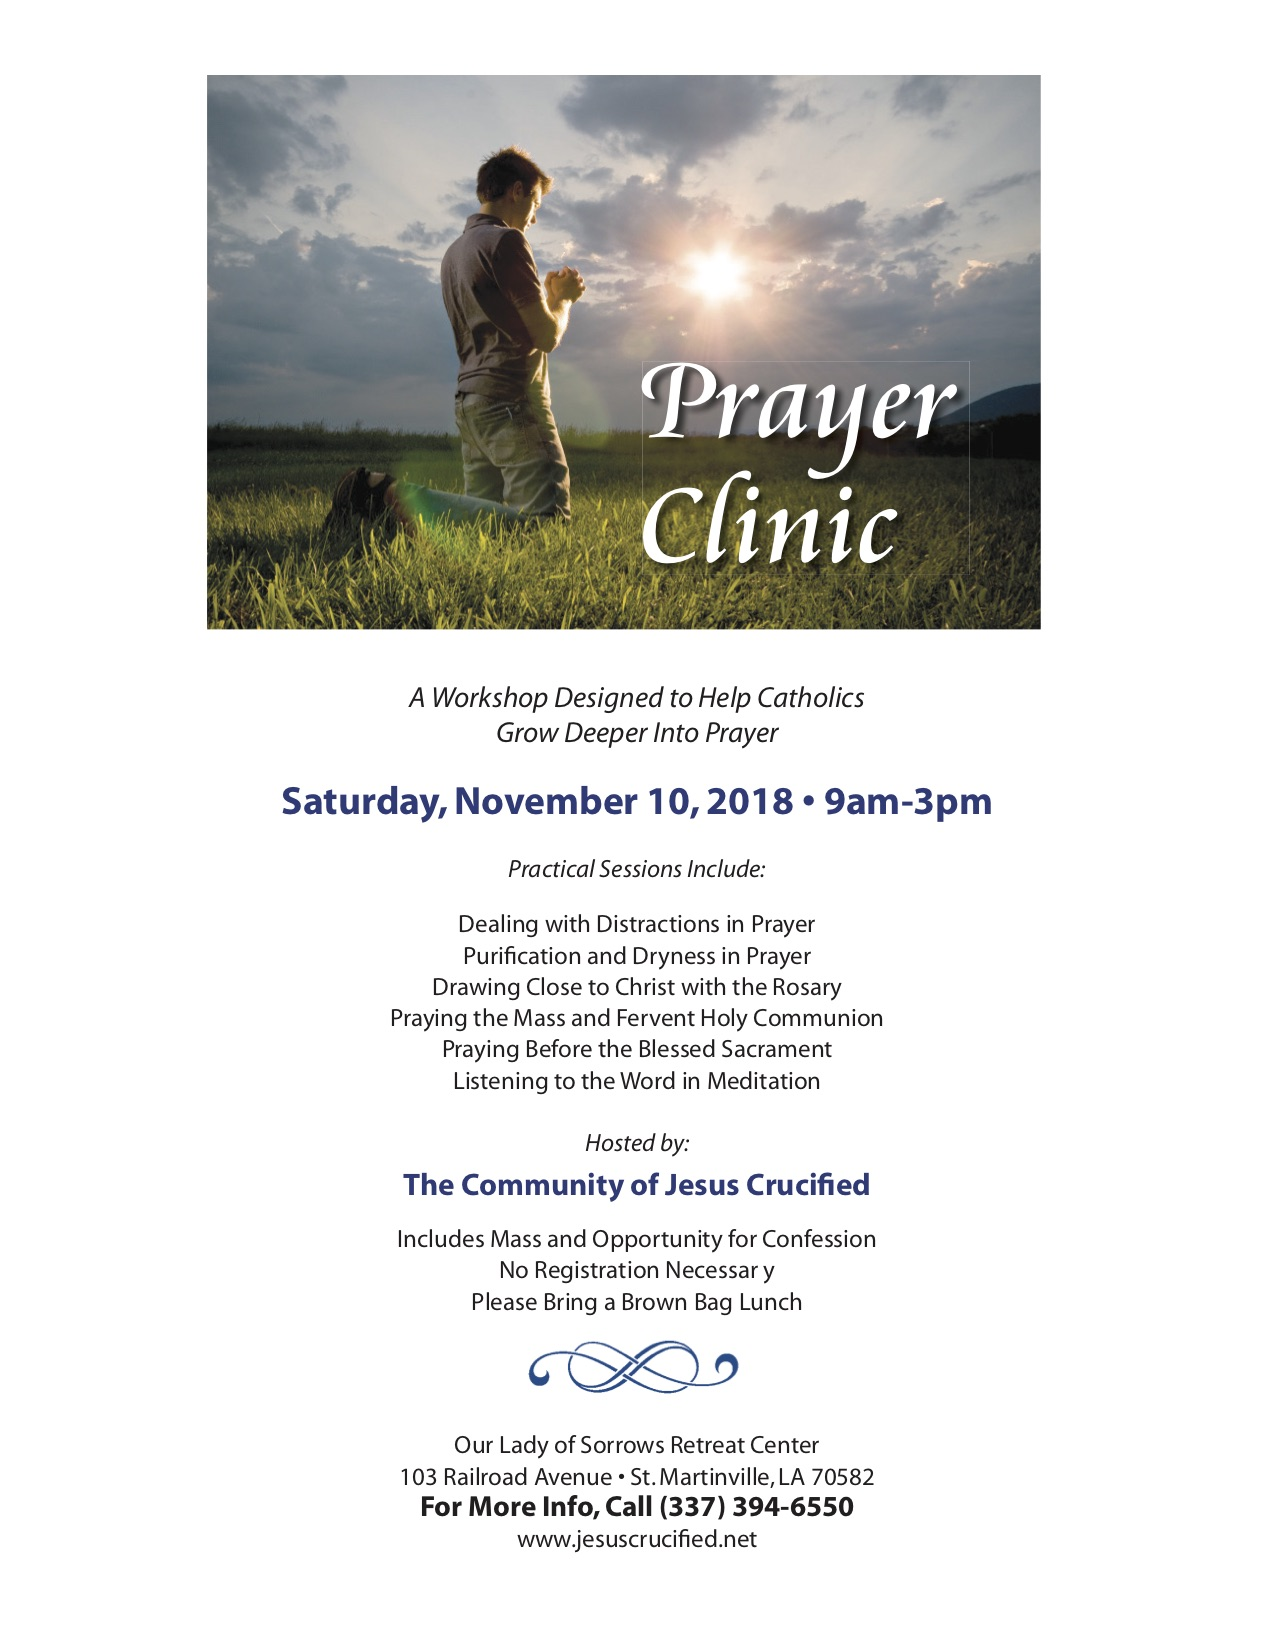 Prayer Clinic.jpg